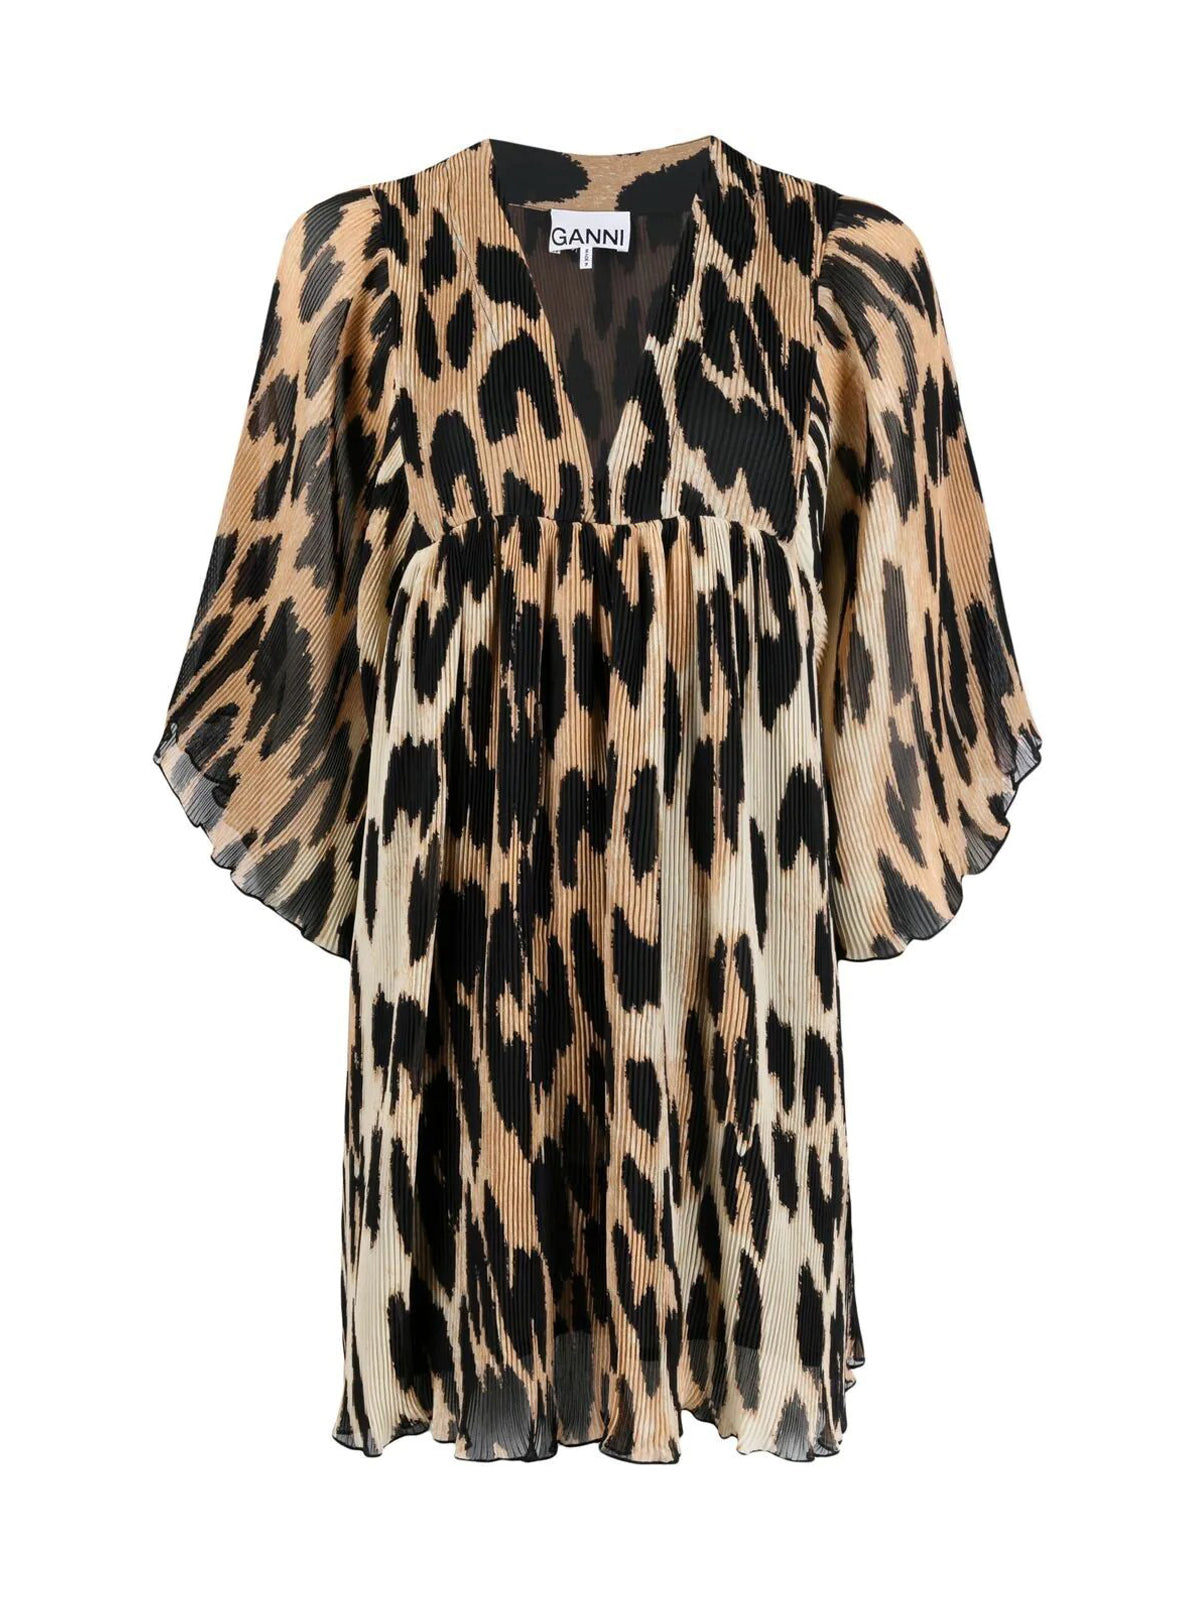 leopard-print pleated minidress